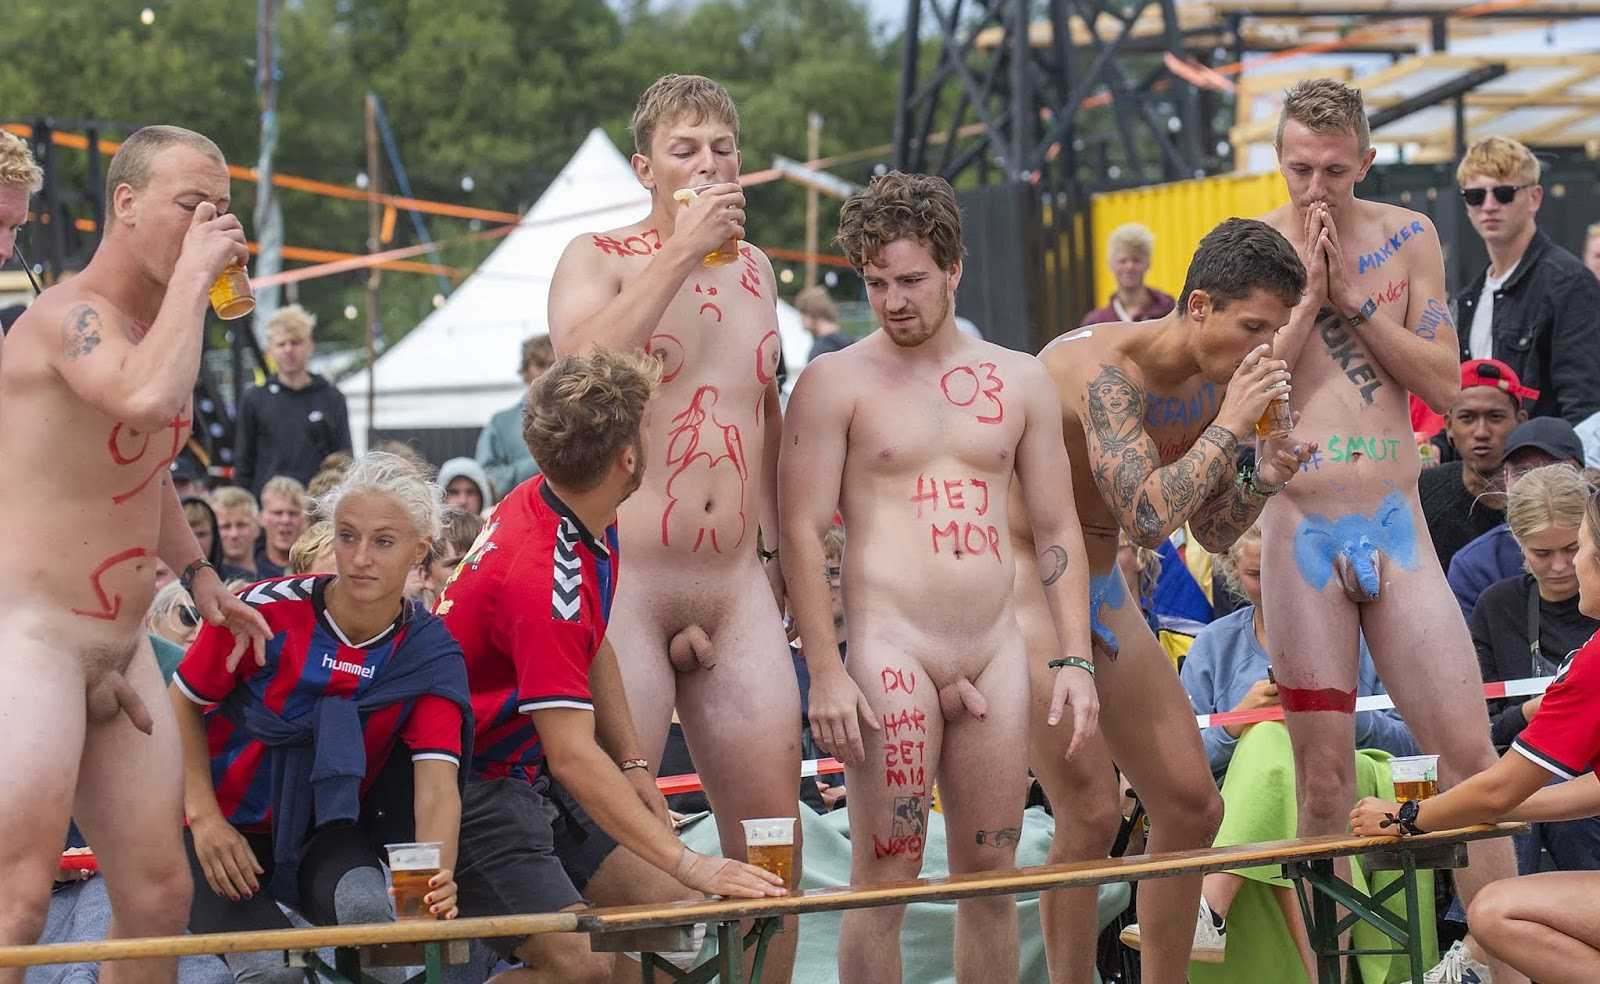 five guys naked in public